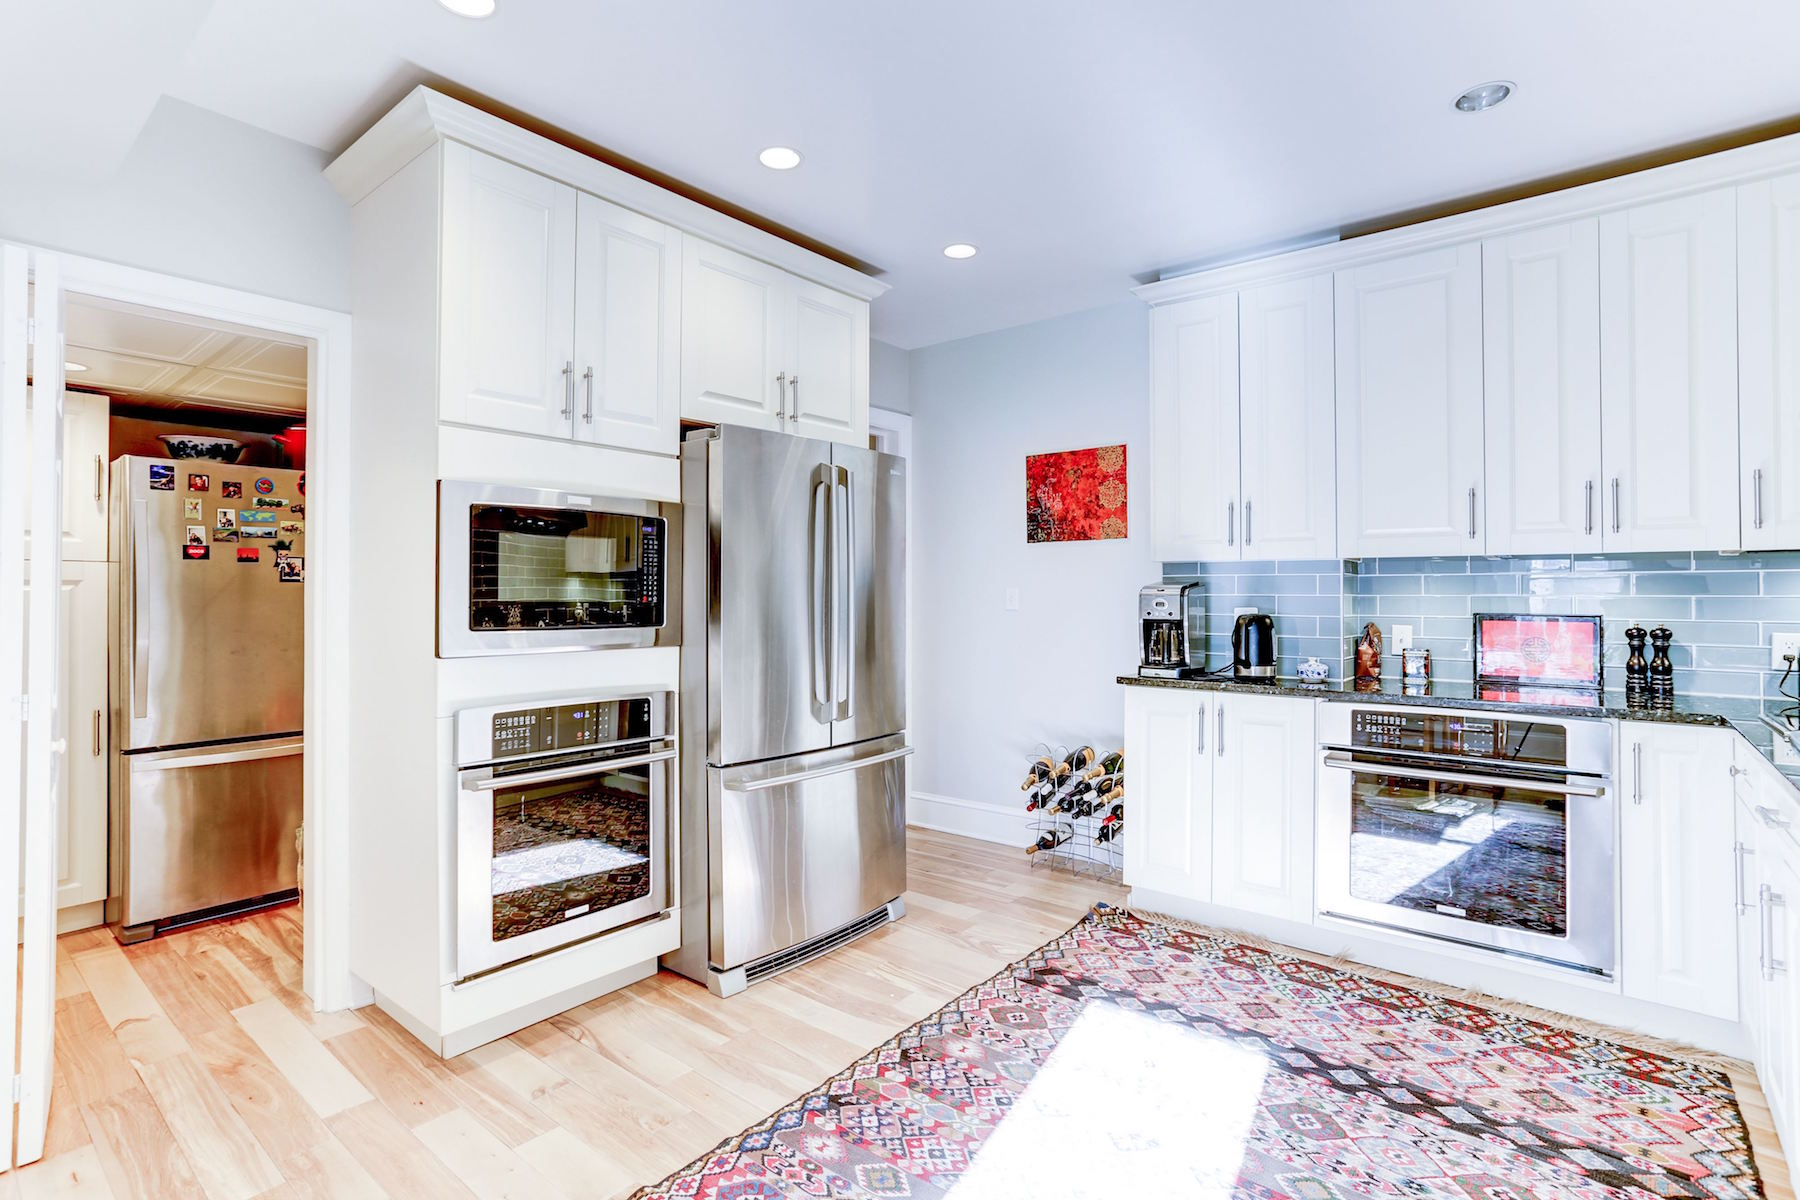 Additional photo for property listing at 2022 Columbia Road #401 2022 Columbia Road #401 Washington, District Of Columbia 20009 United States